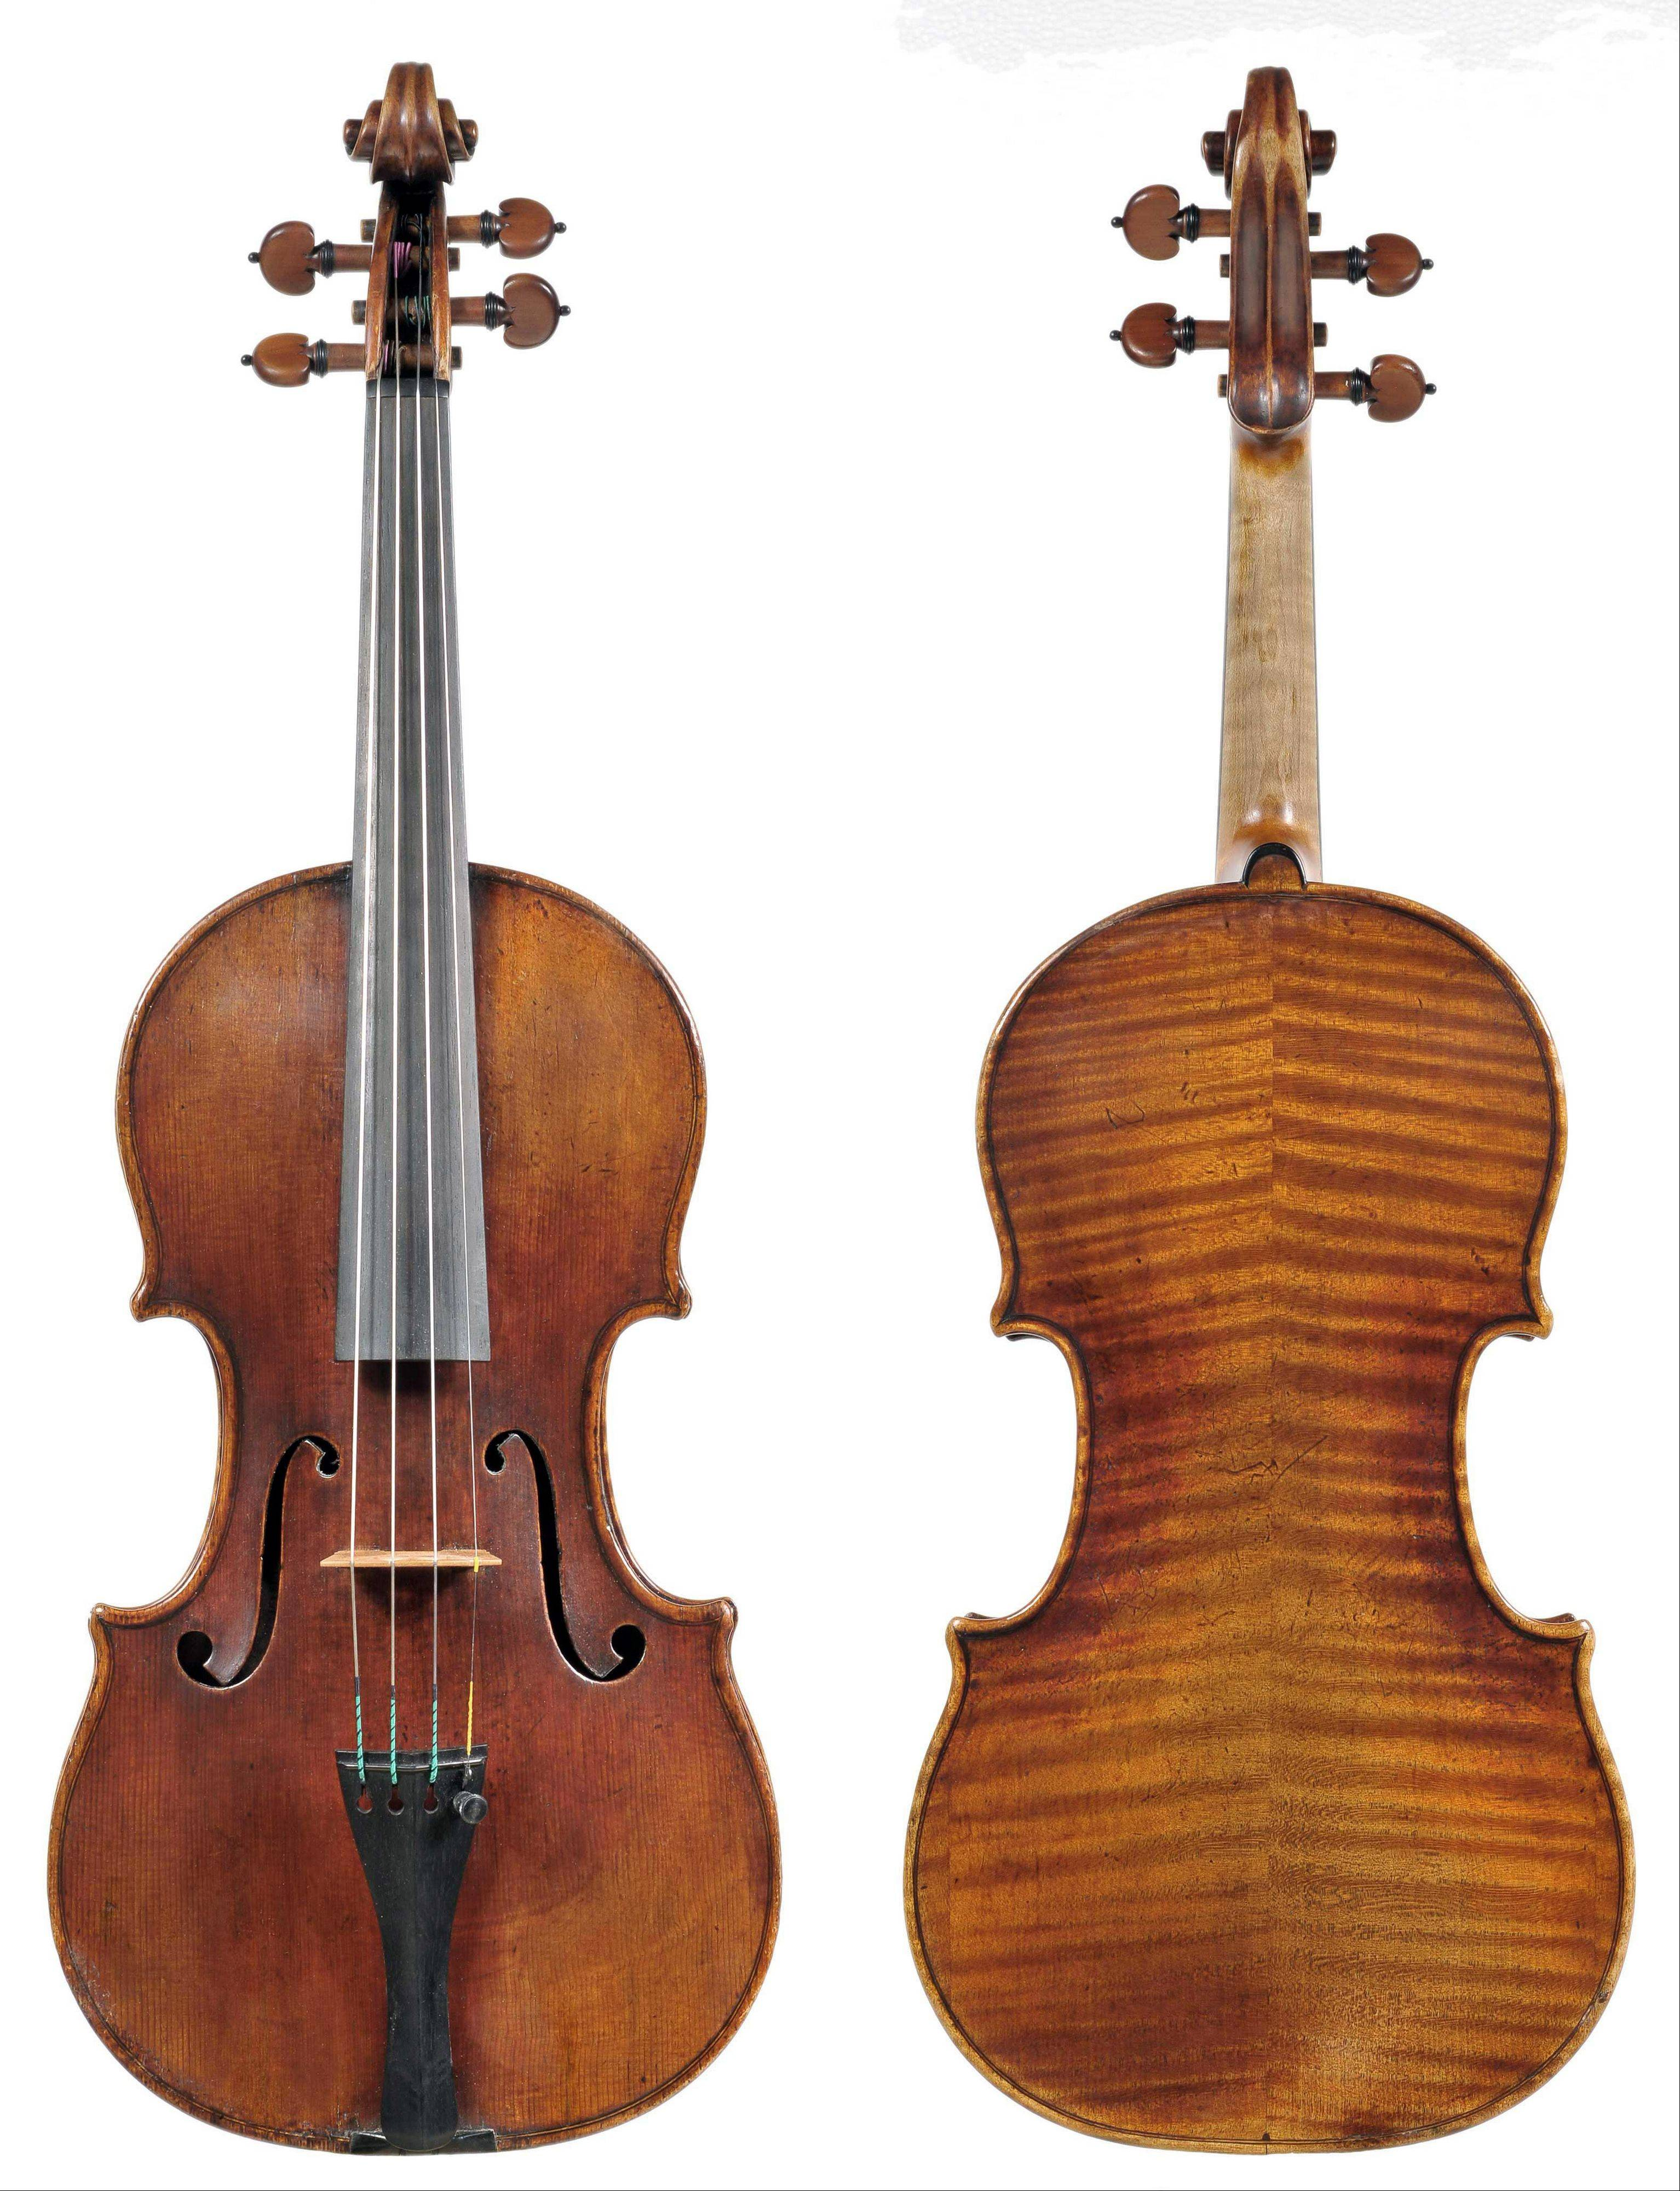 The 300-year-old Stradivarius violin that was stolen from MSO concertmaster Frank Almond. After three arrests, the violin was recovered, police said Thursday.